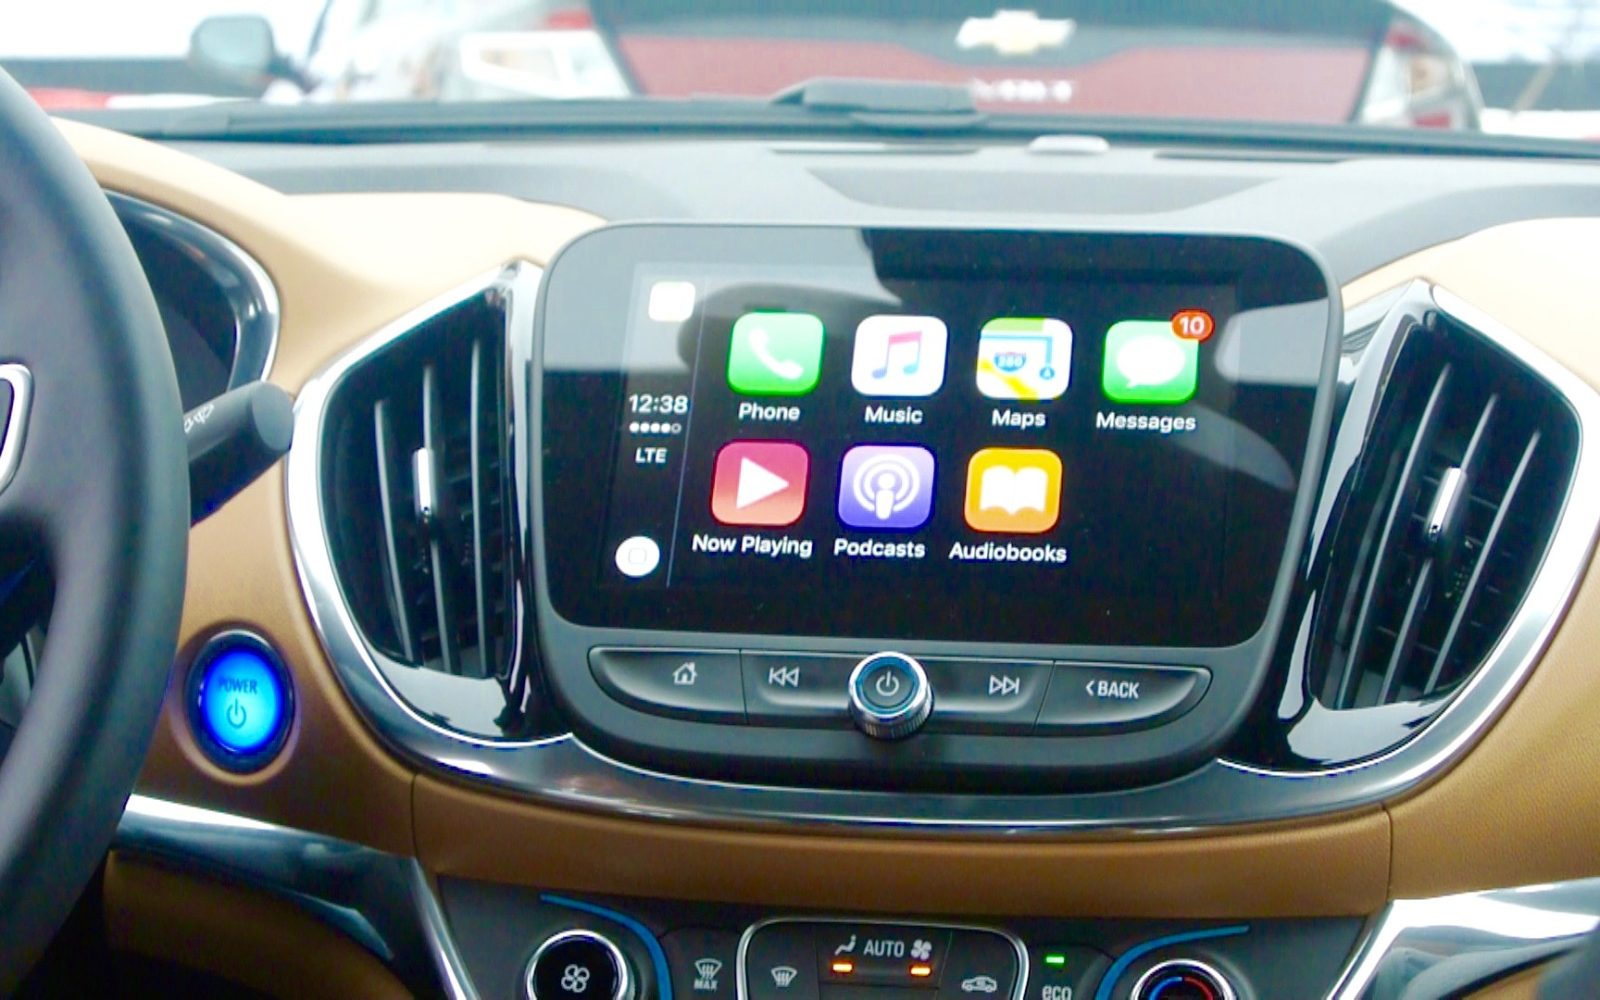 Hands On With Carplay The New Chevy Volts 8 Inch Capacitive Volt Car Display Video